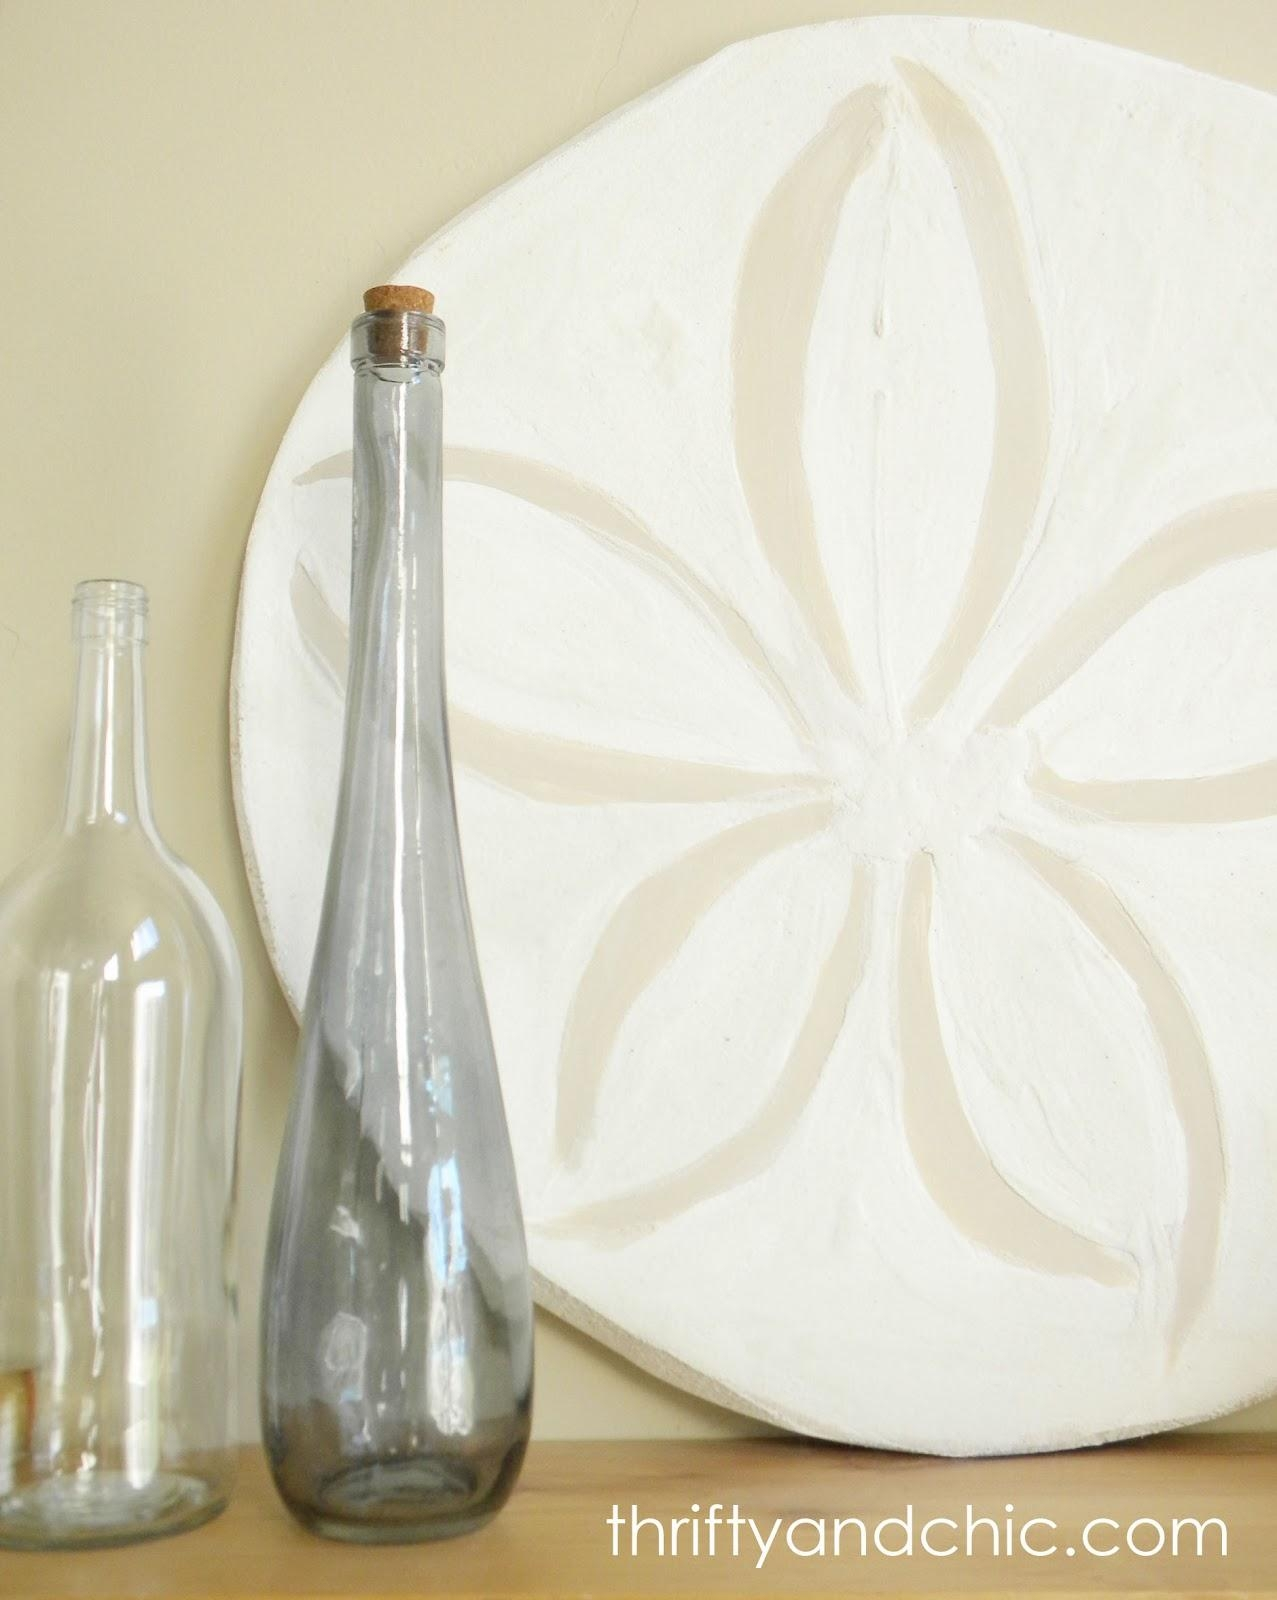 Thrifty And Chic – Diy Projects And Home Decor Inside Sand Dollar Wall Art (View 16 of 20)